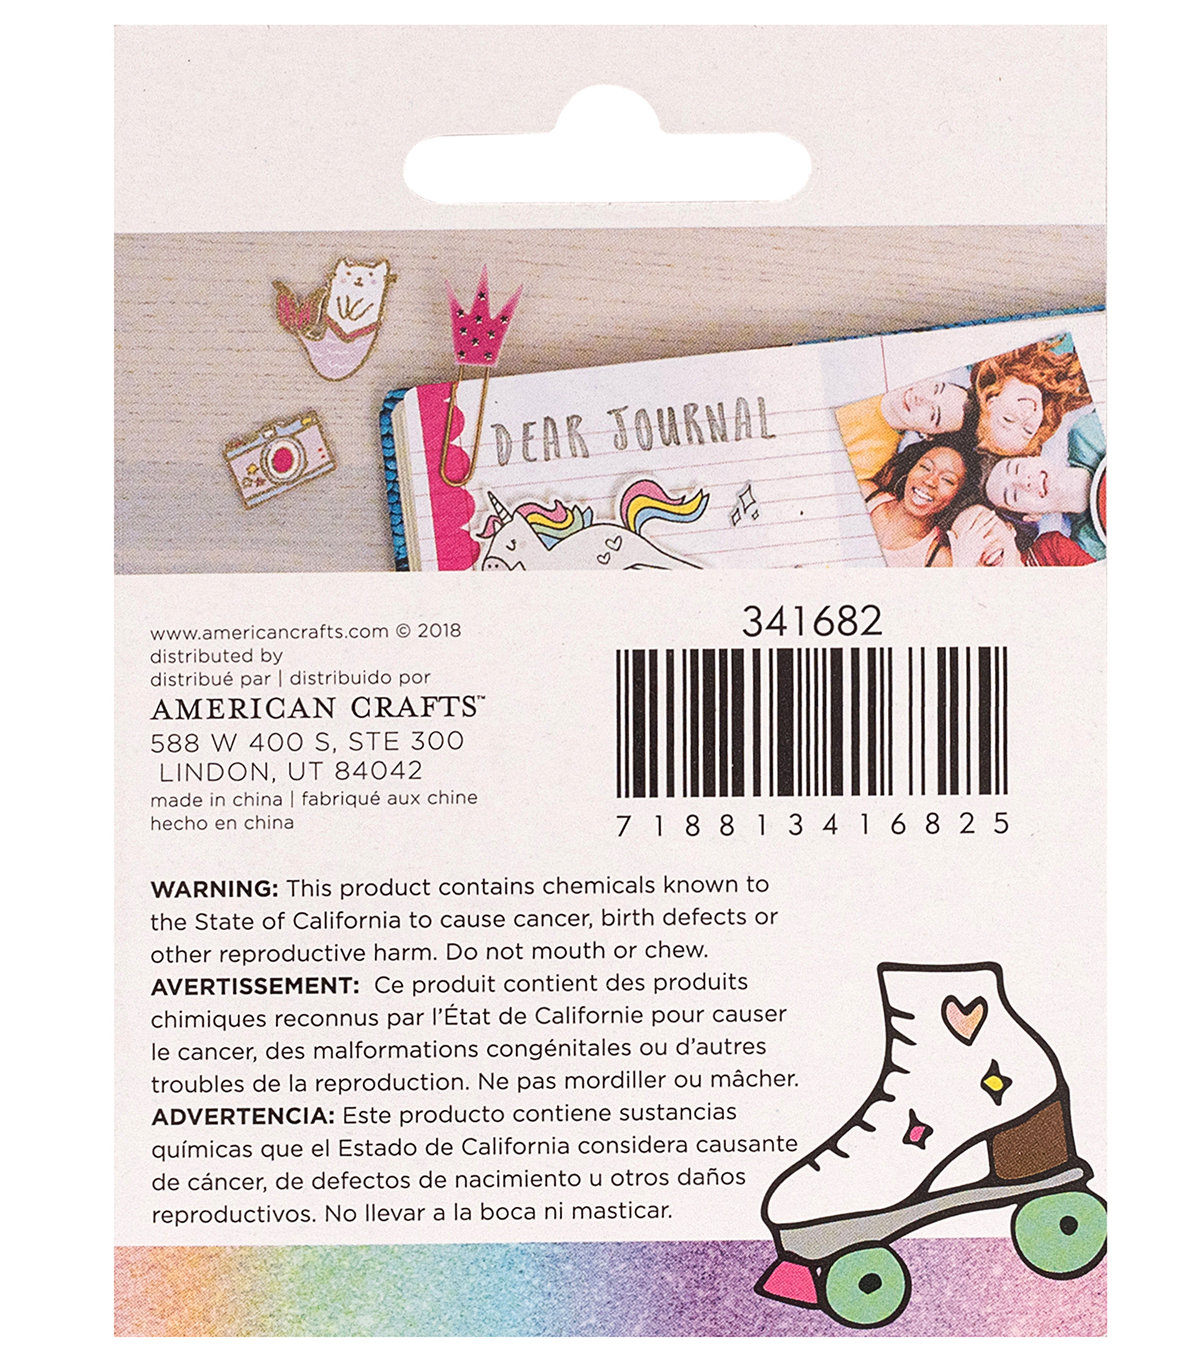 American Crafts Hello Dreamer Cat Adhesive Enamel Sticker